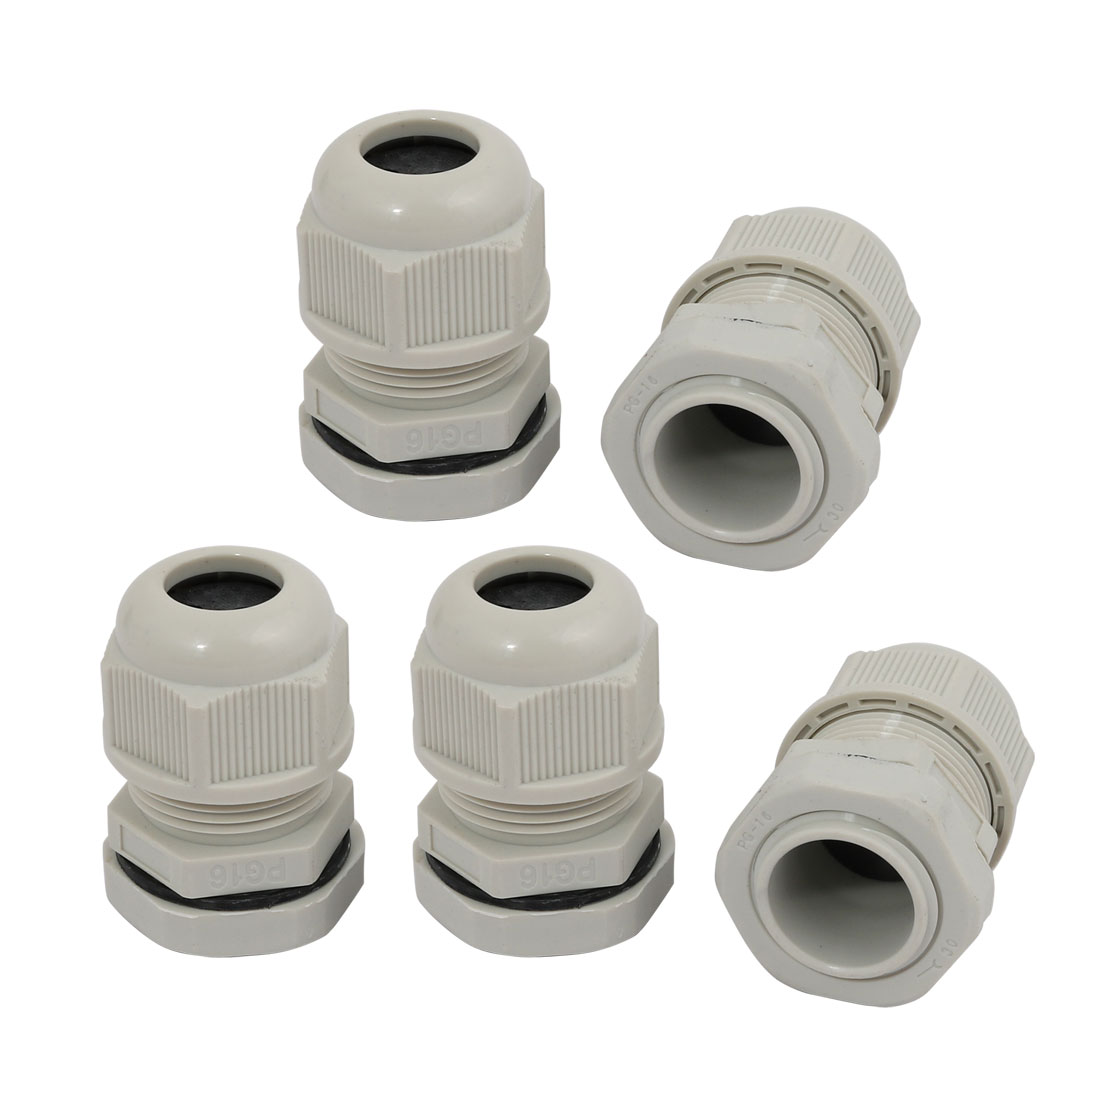 5pcs PG16 Nylon 2 Holes Cable Gland Connector Joint Gray 4mm-6mm Range